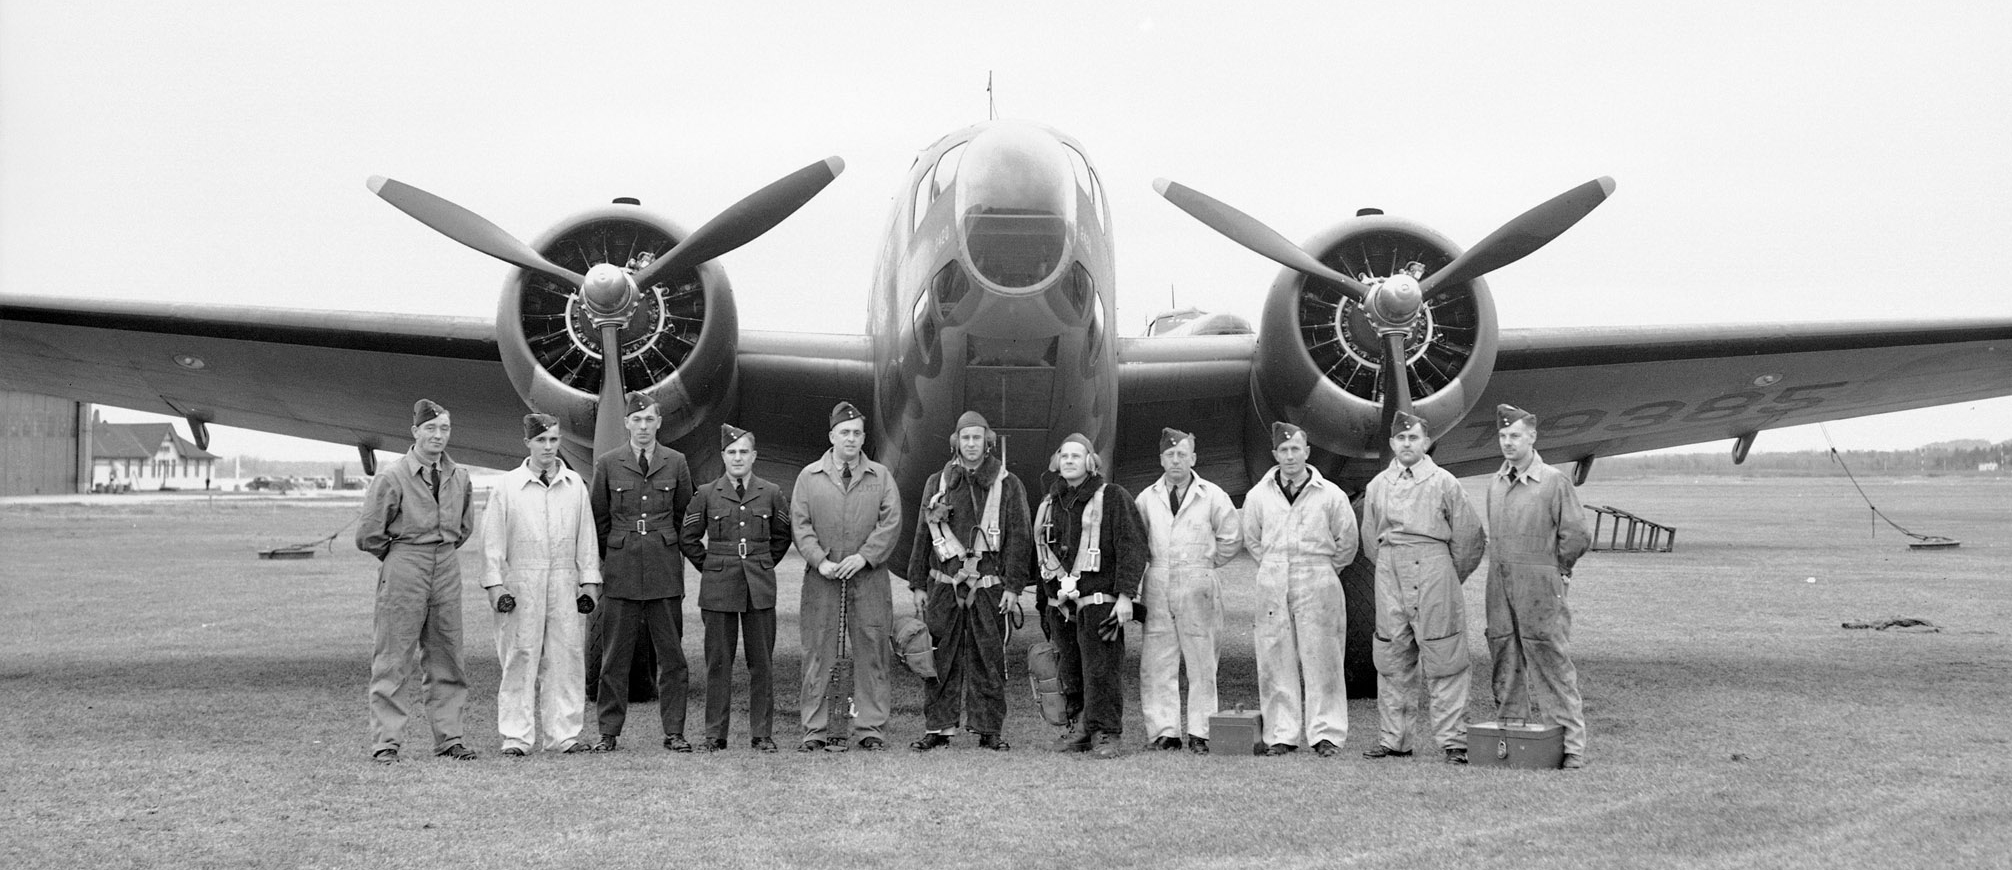 Air and ground crews pose in front of a Lockheed Hudson aircraft in autumn 1940. PHOTO: DND Archives, PL-2341